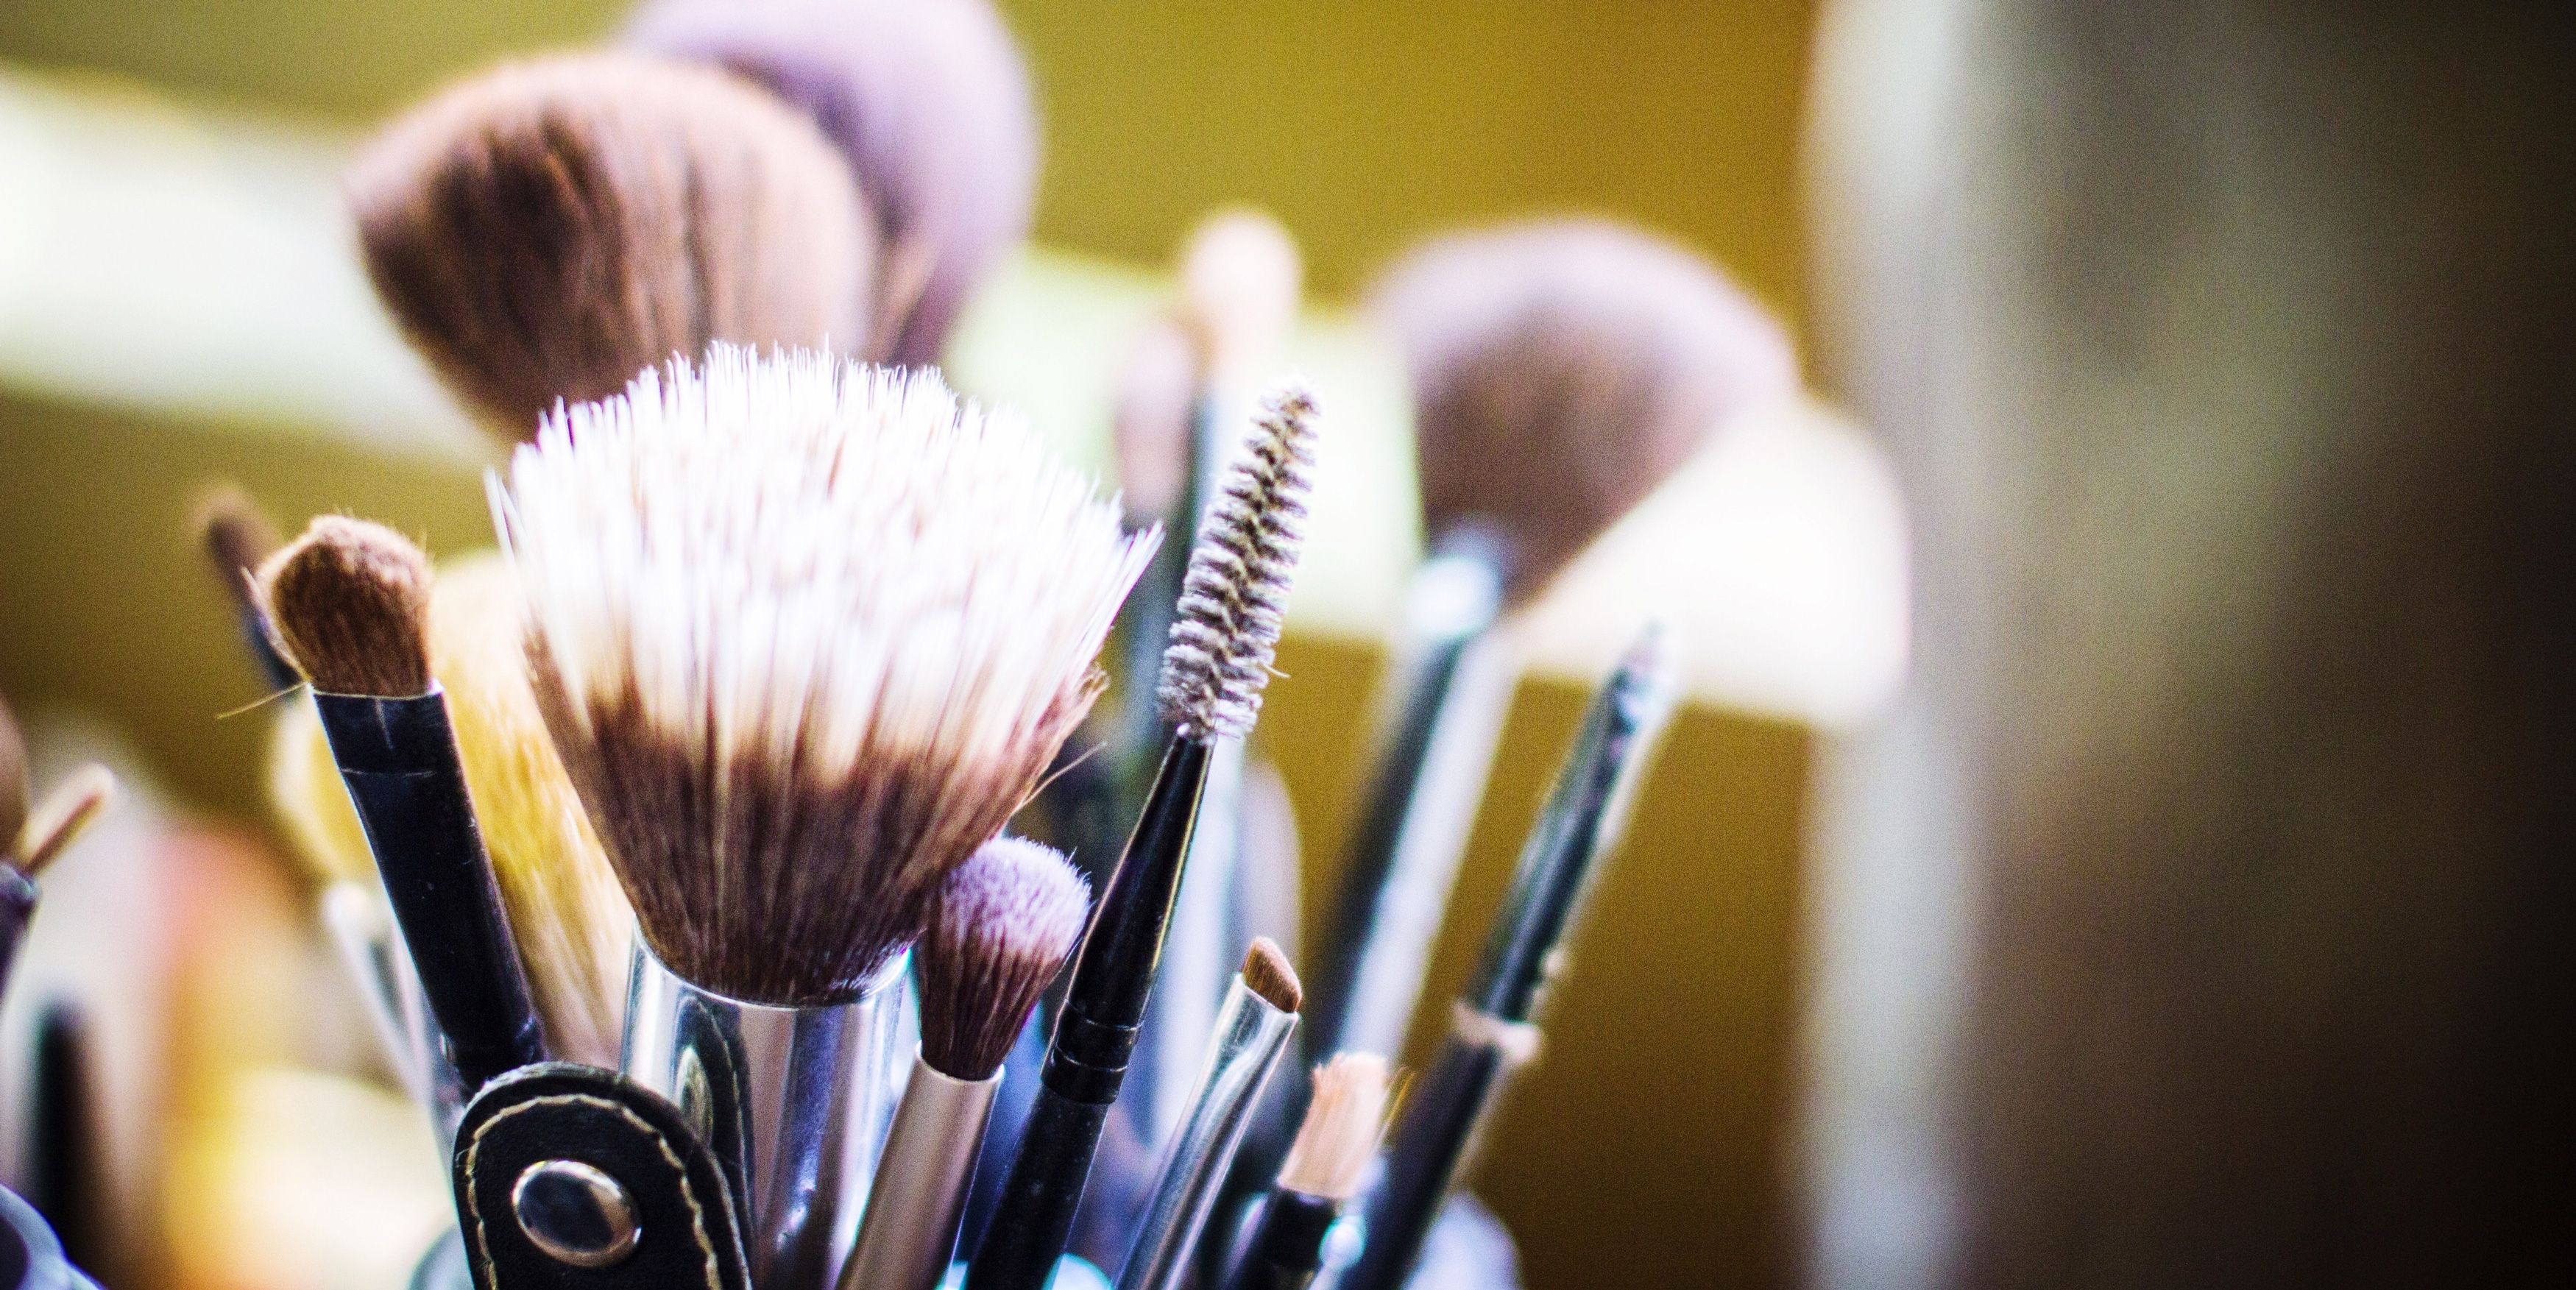 How to Clean Your Makeup Brushes - Why